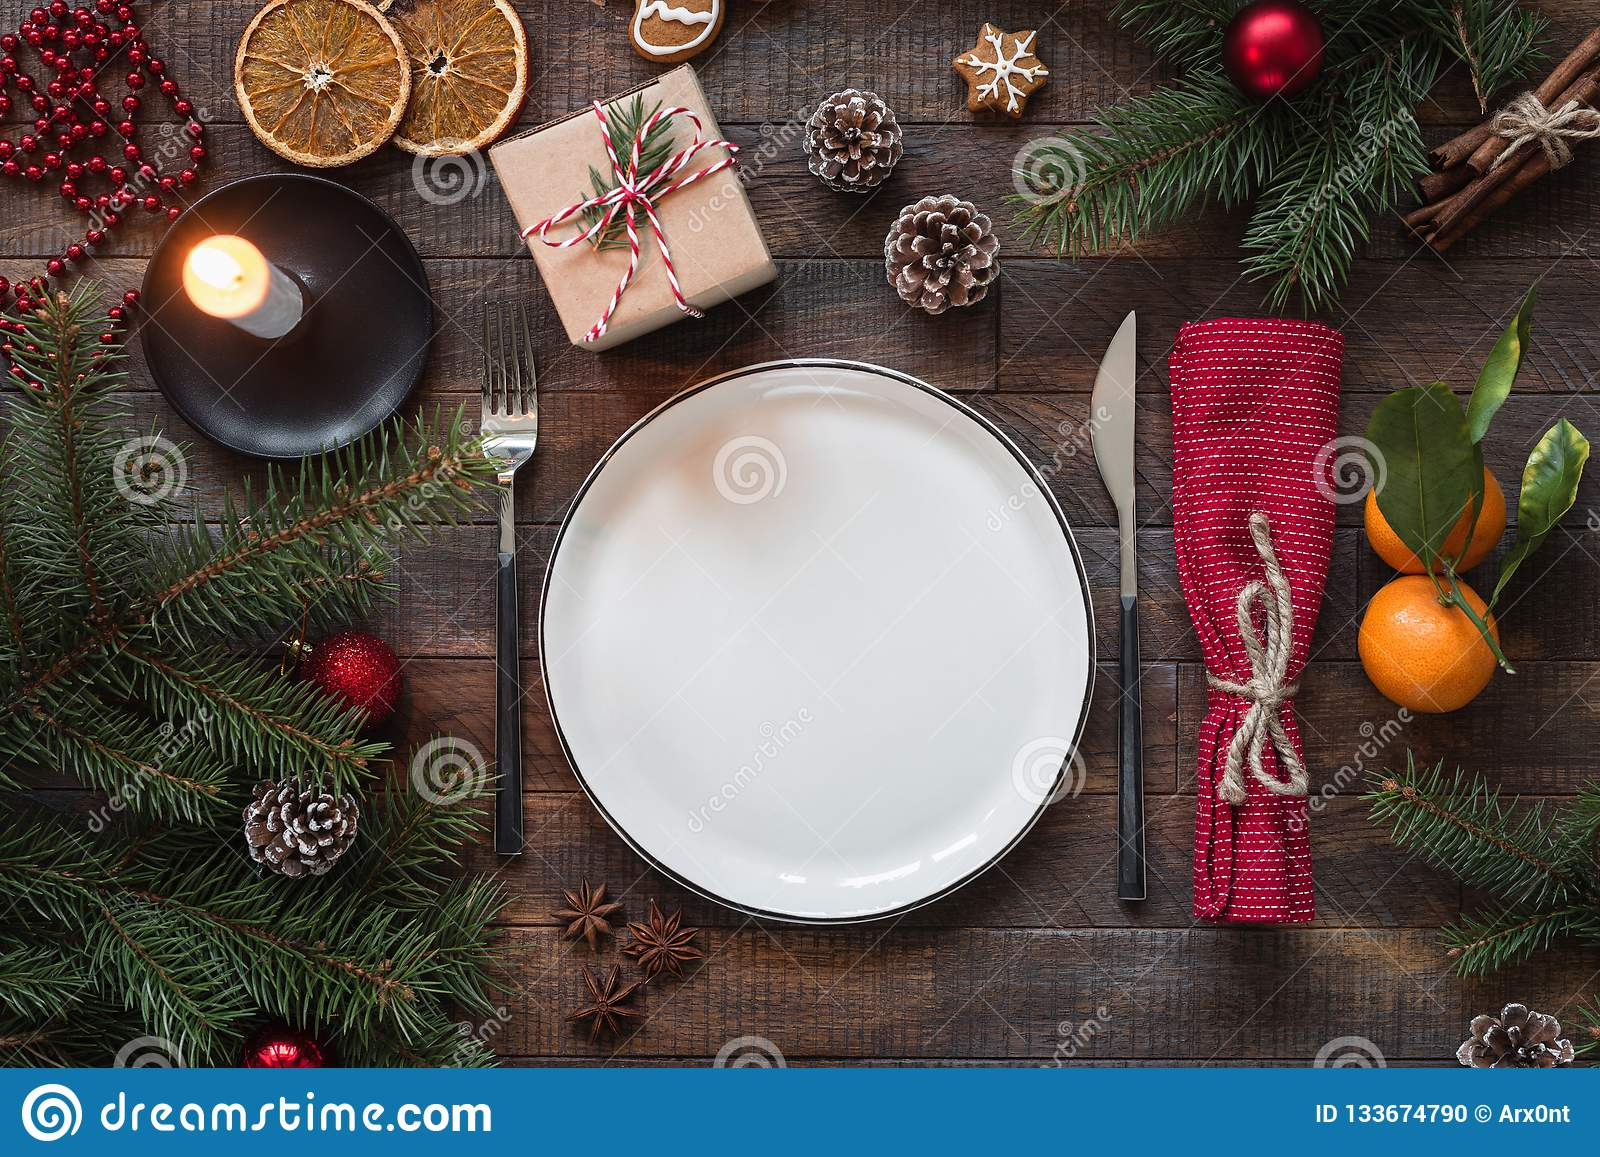 Christmas Top View.Authentic Christmas Table Setting Top View Stock Photo